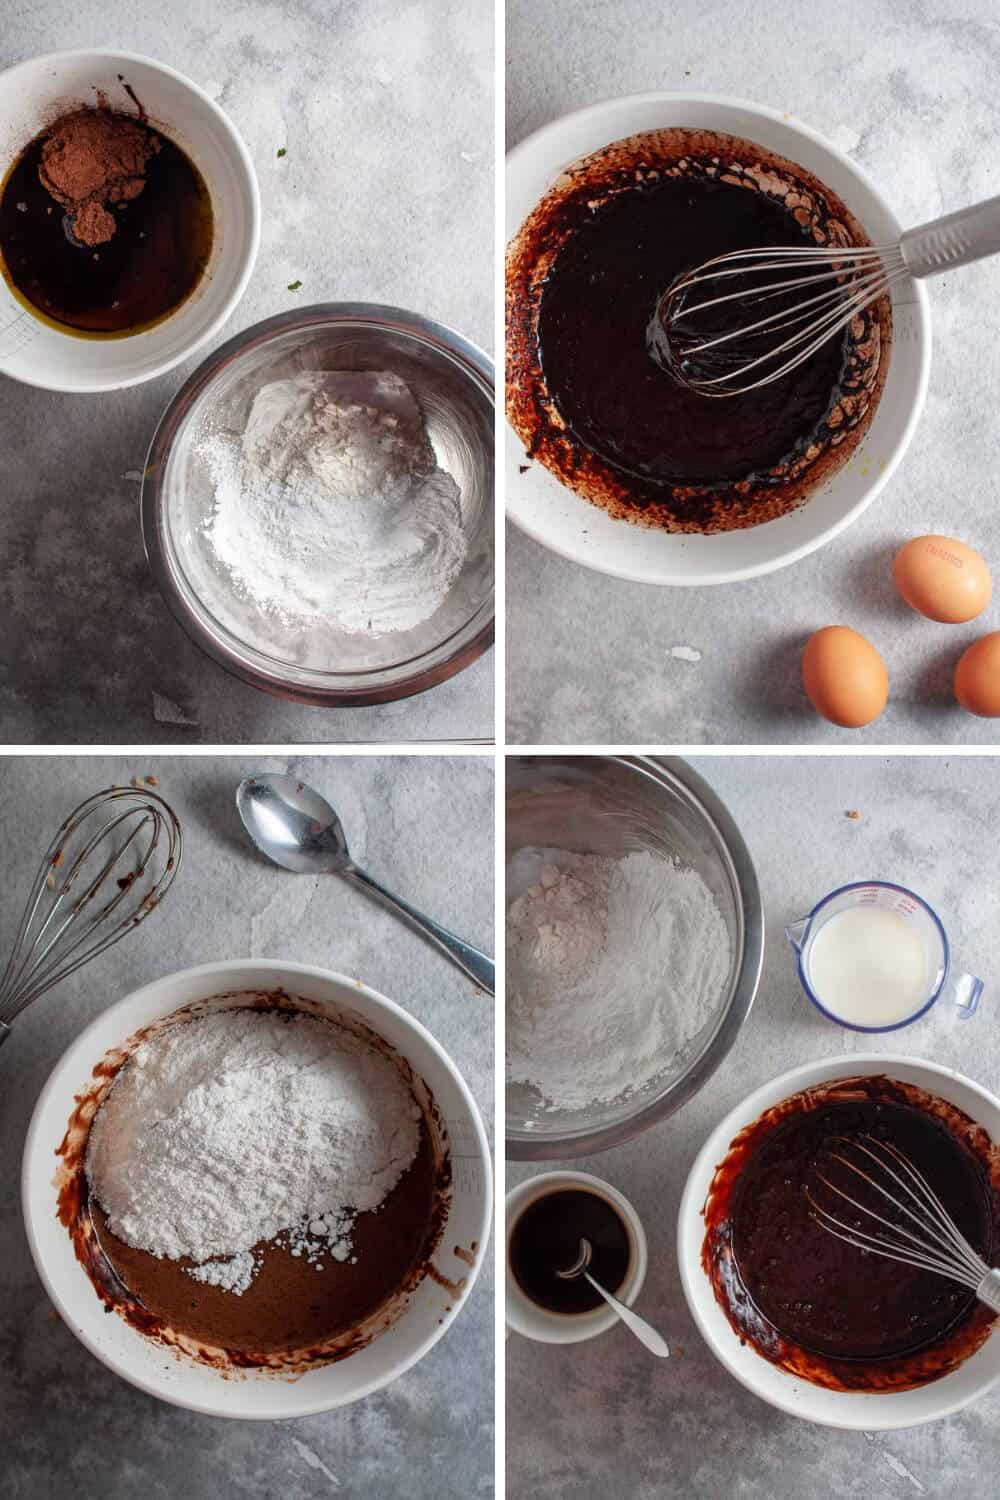 Chocolate Avocado Cake preparation collage